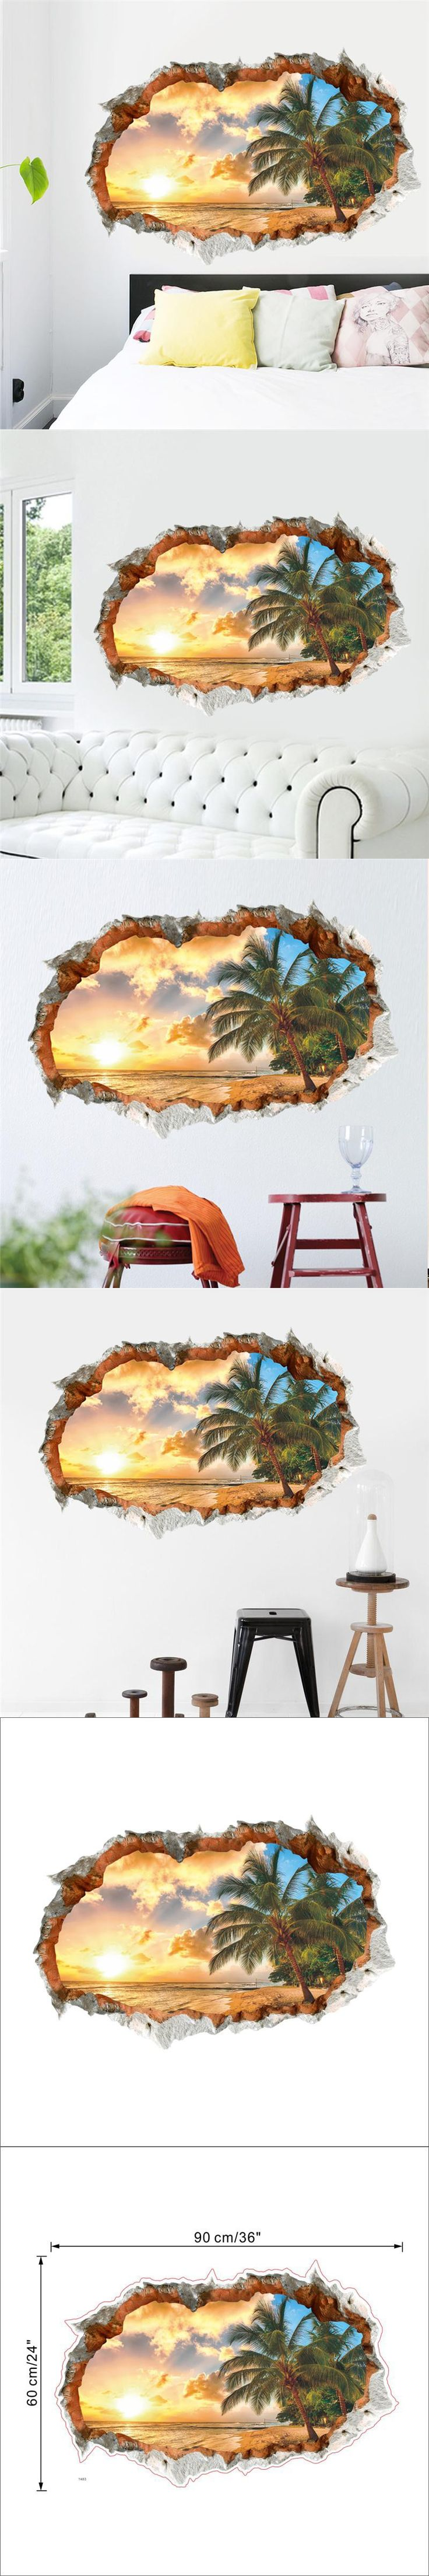 sunset sea beach wall decals decorative stickers living bedroom home decor 1483. 3d scenery mural art diy landscape posters 2.5 $5.6